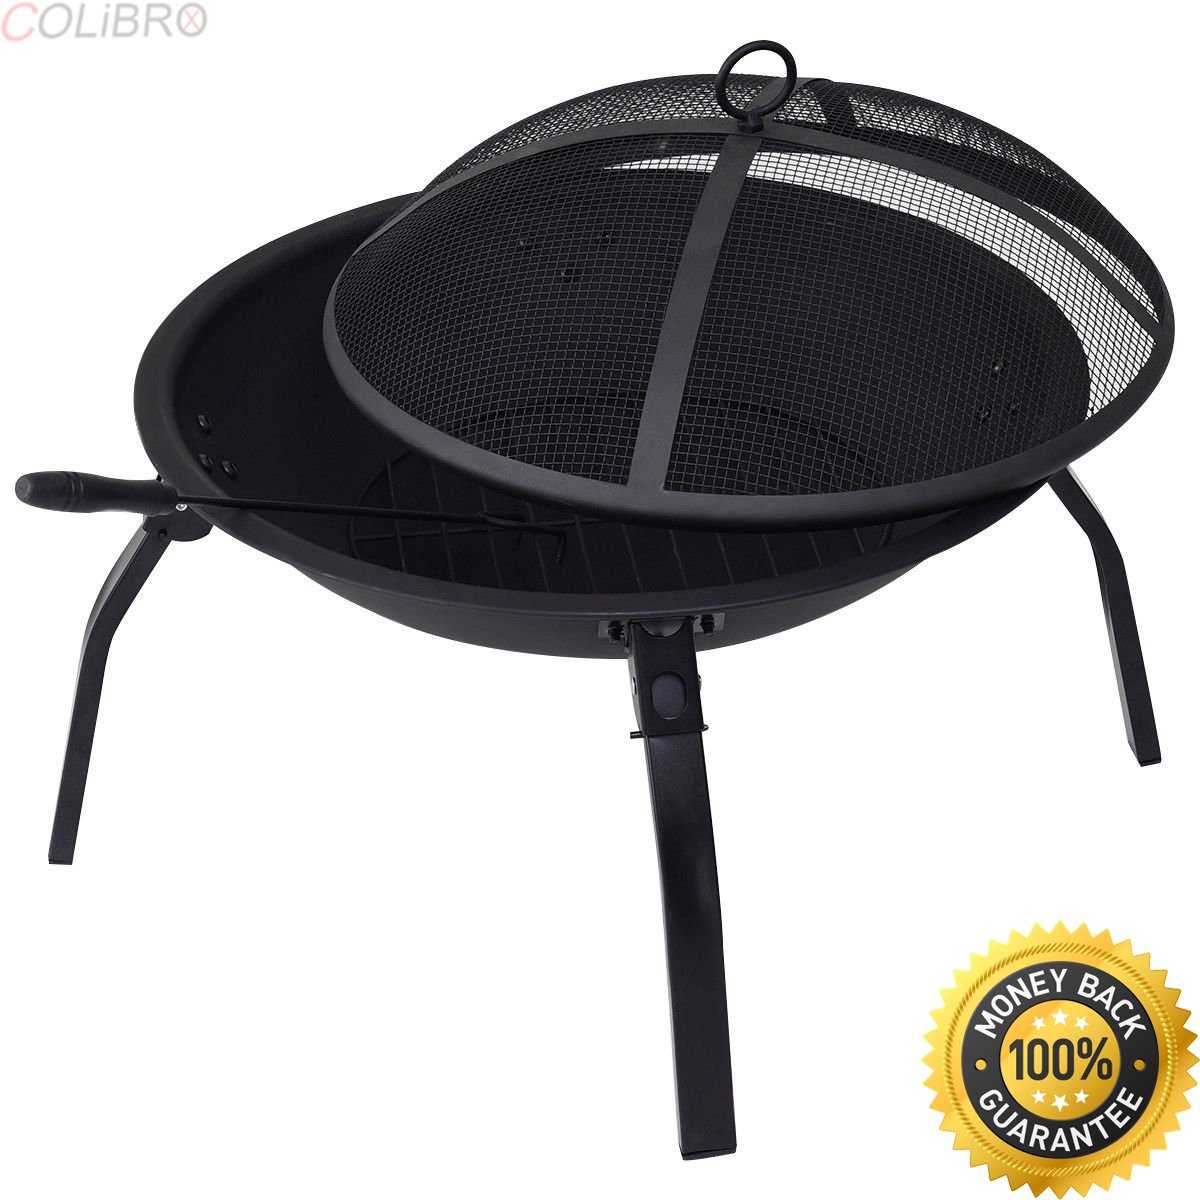 """COLIBROX--Portable 22"""" Folding Fire Pit BBQ 4 Leg Fire bowl Cooking Campfire Patio Outdoor. build fire pit grill. fire pit grill walmart. open fire cooking recipes. cooking fire pit designs."""